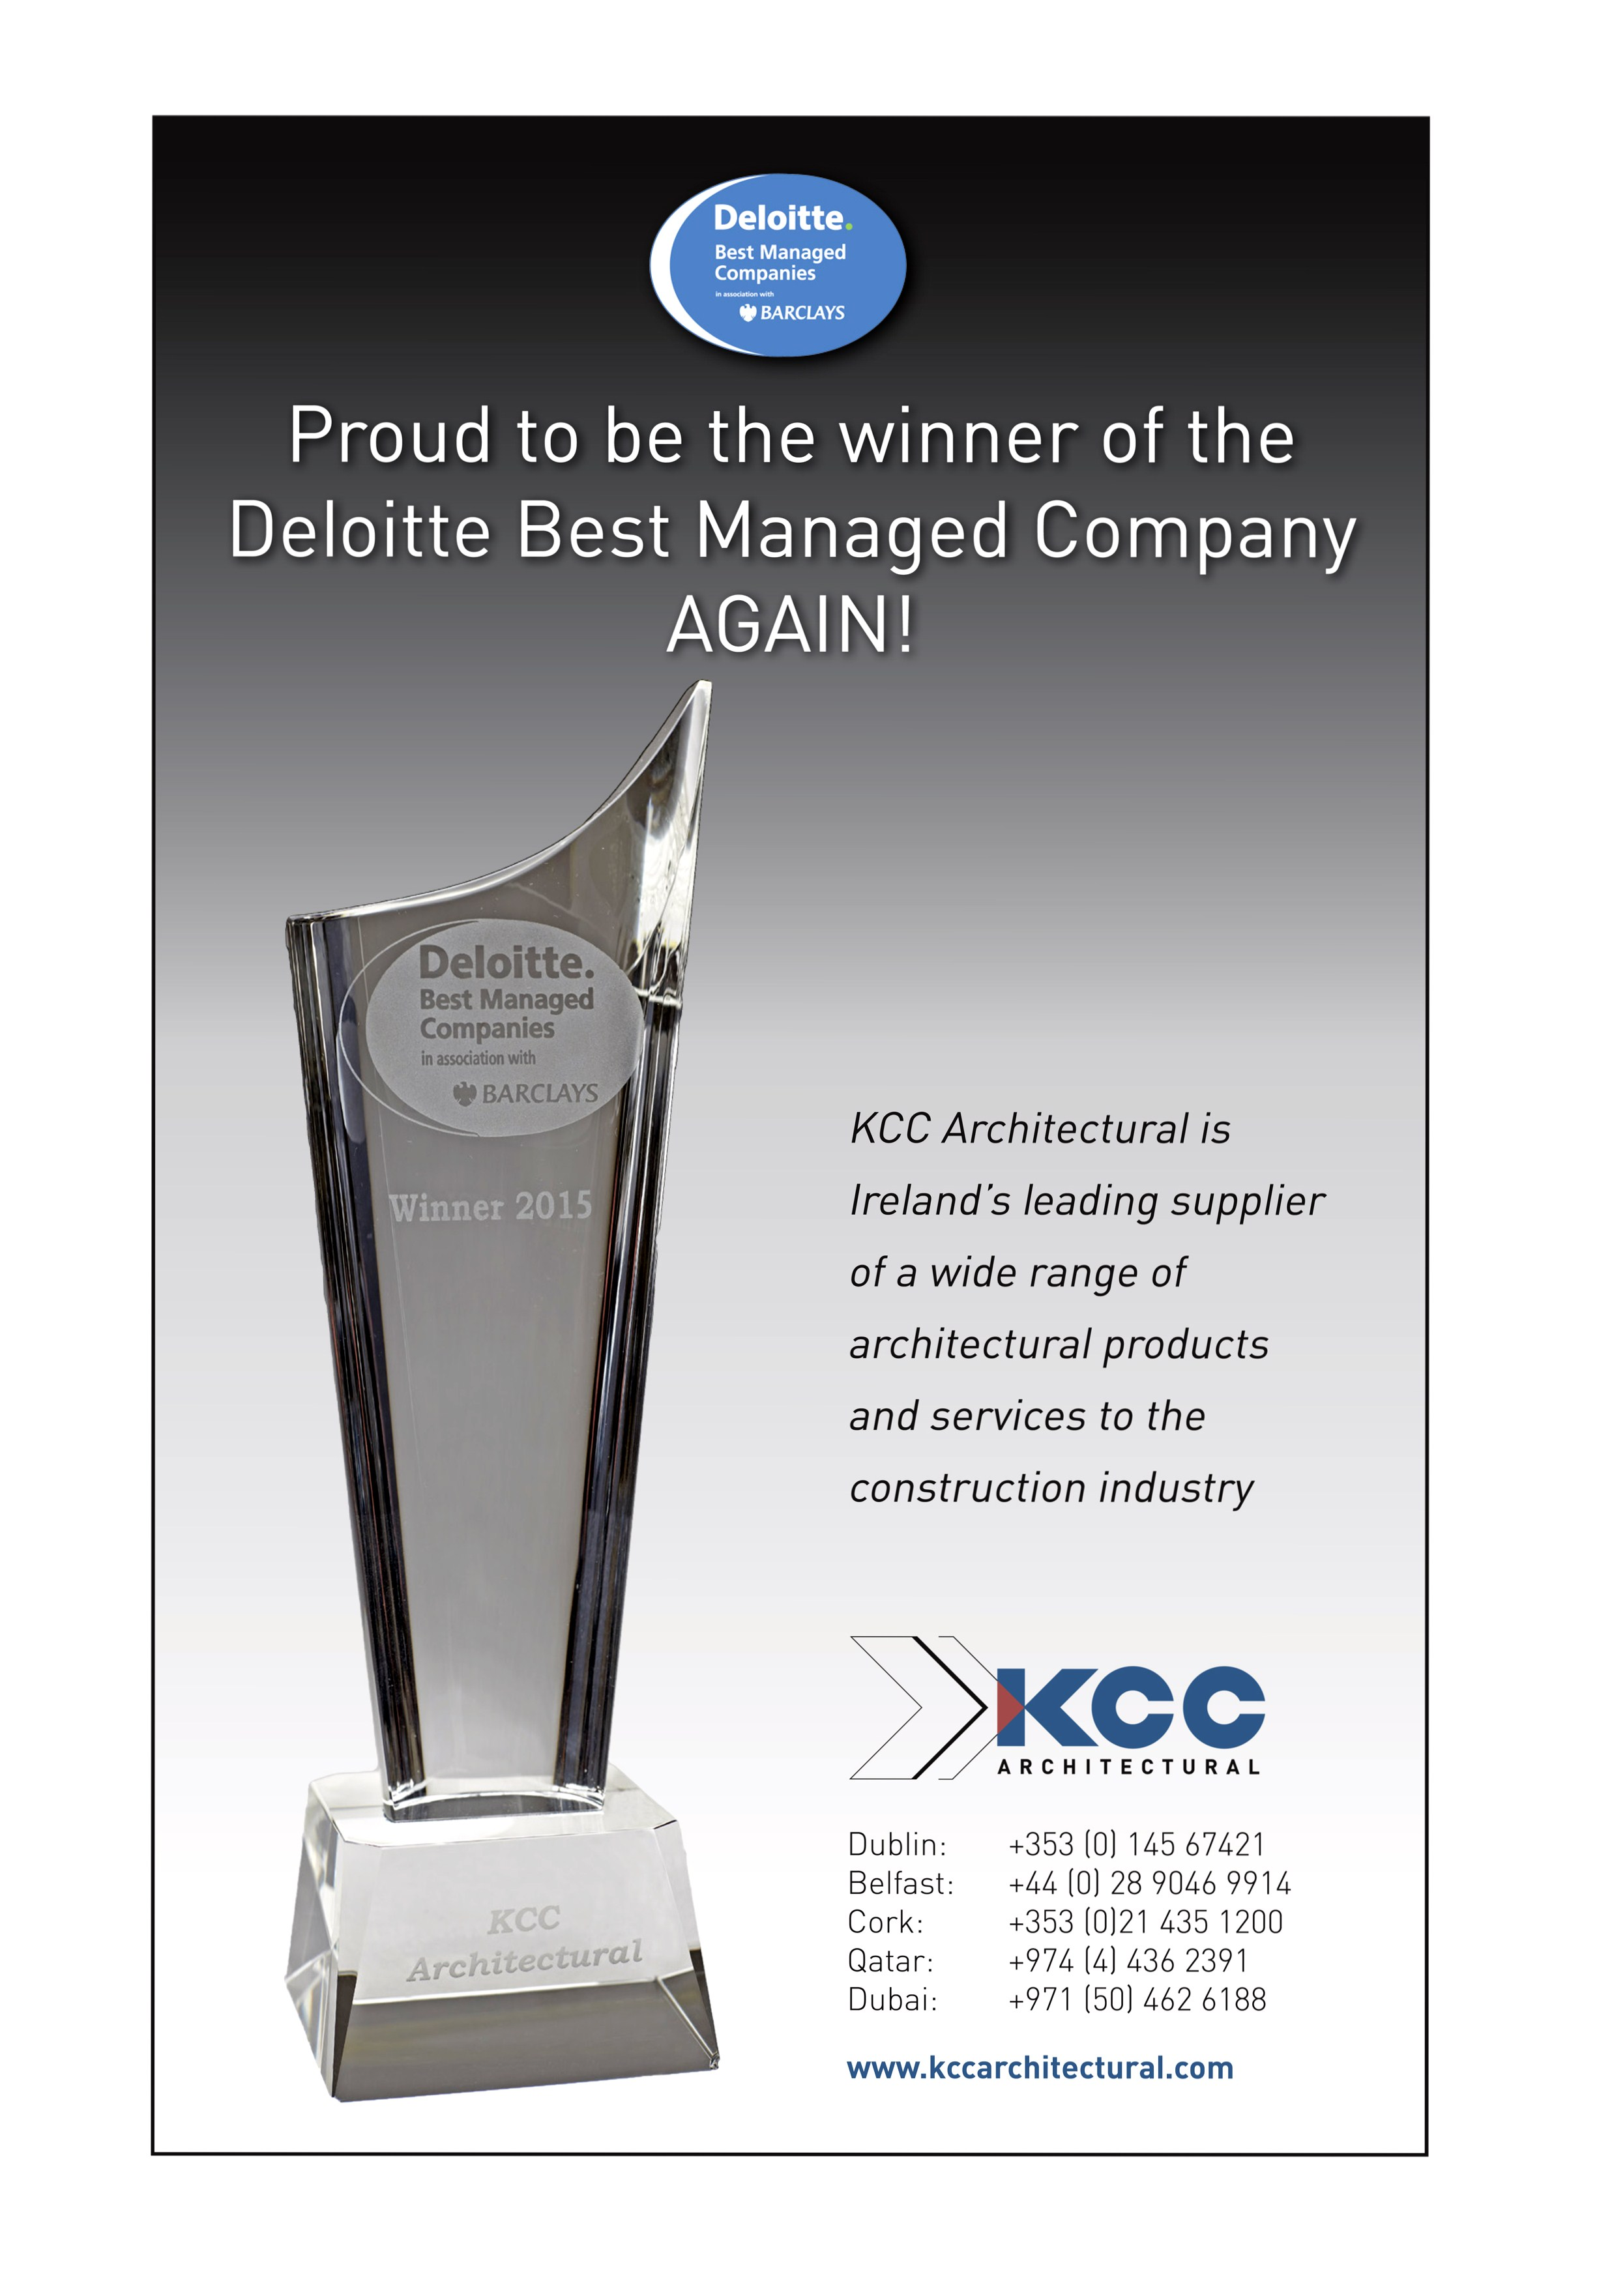 Kcc Architectural Deloitte Best Managed Company 2nd Year